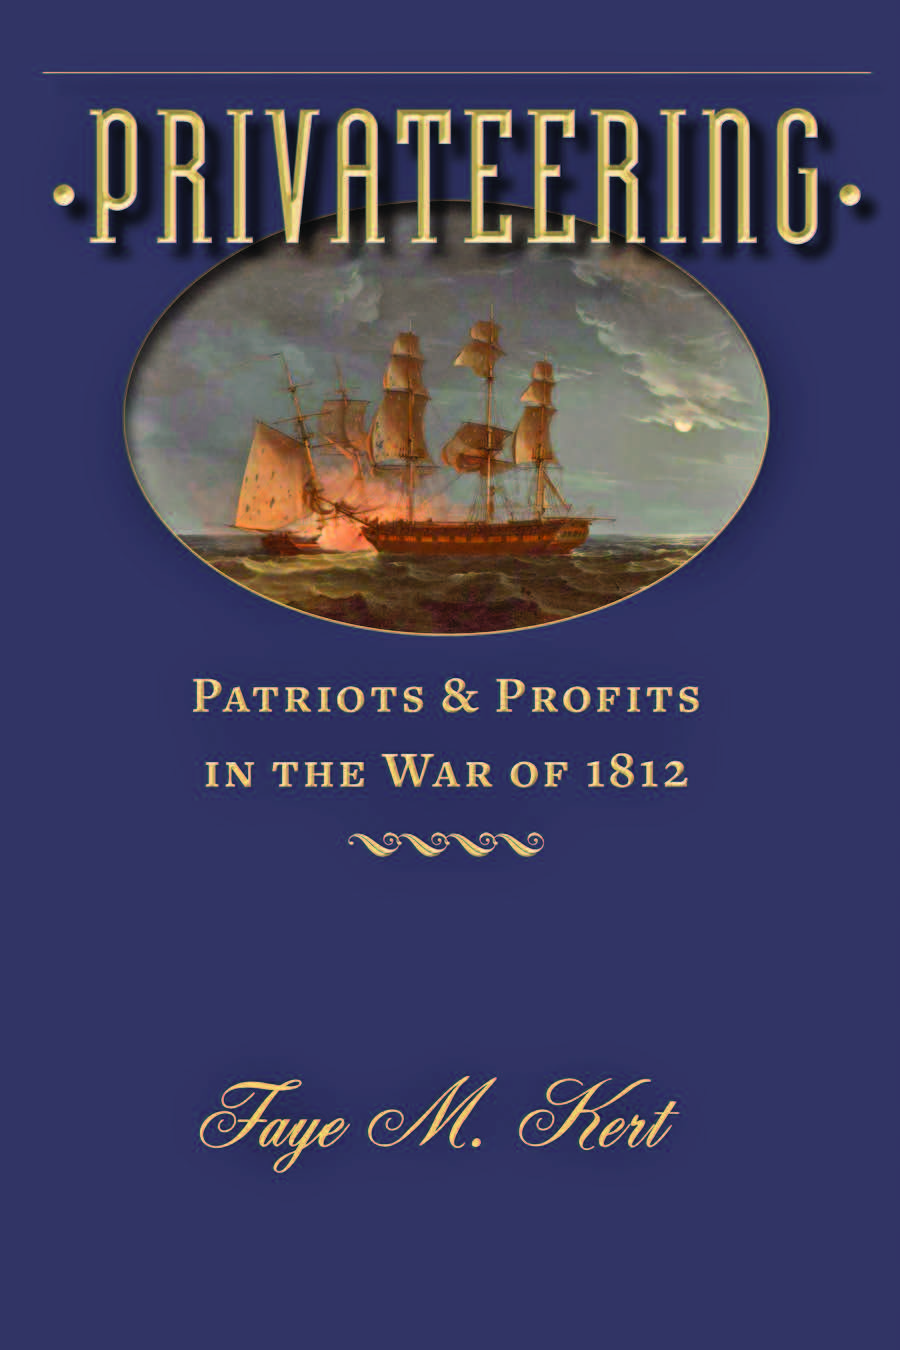 Reflections on the Bicentennial of the War of 1812 | Johns Hopkins  University Press Blog